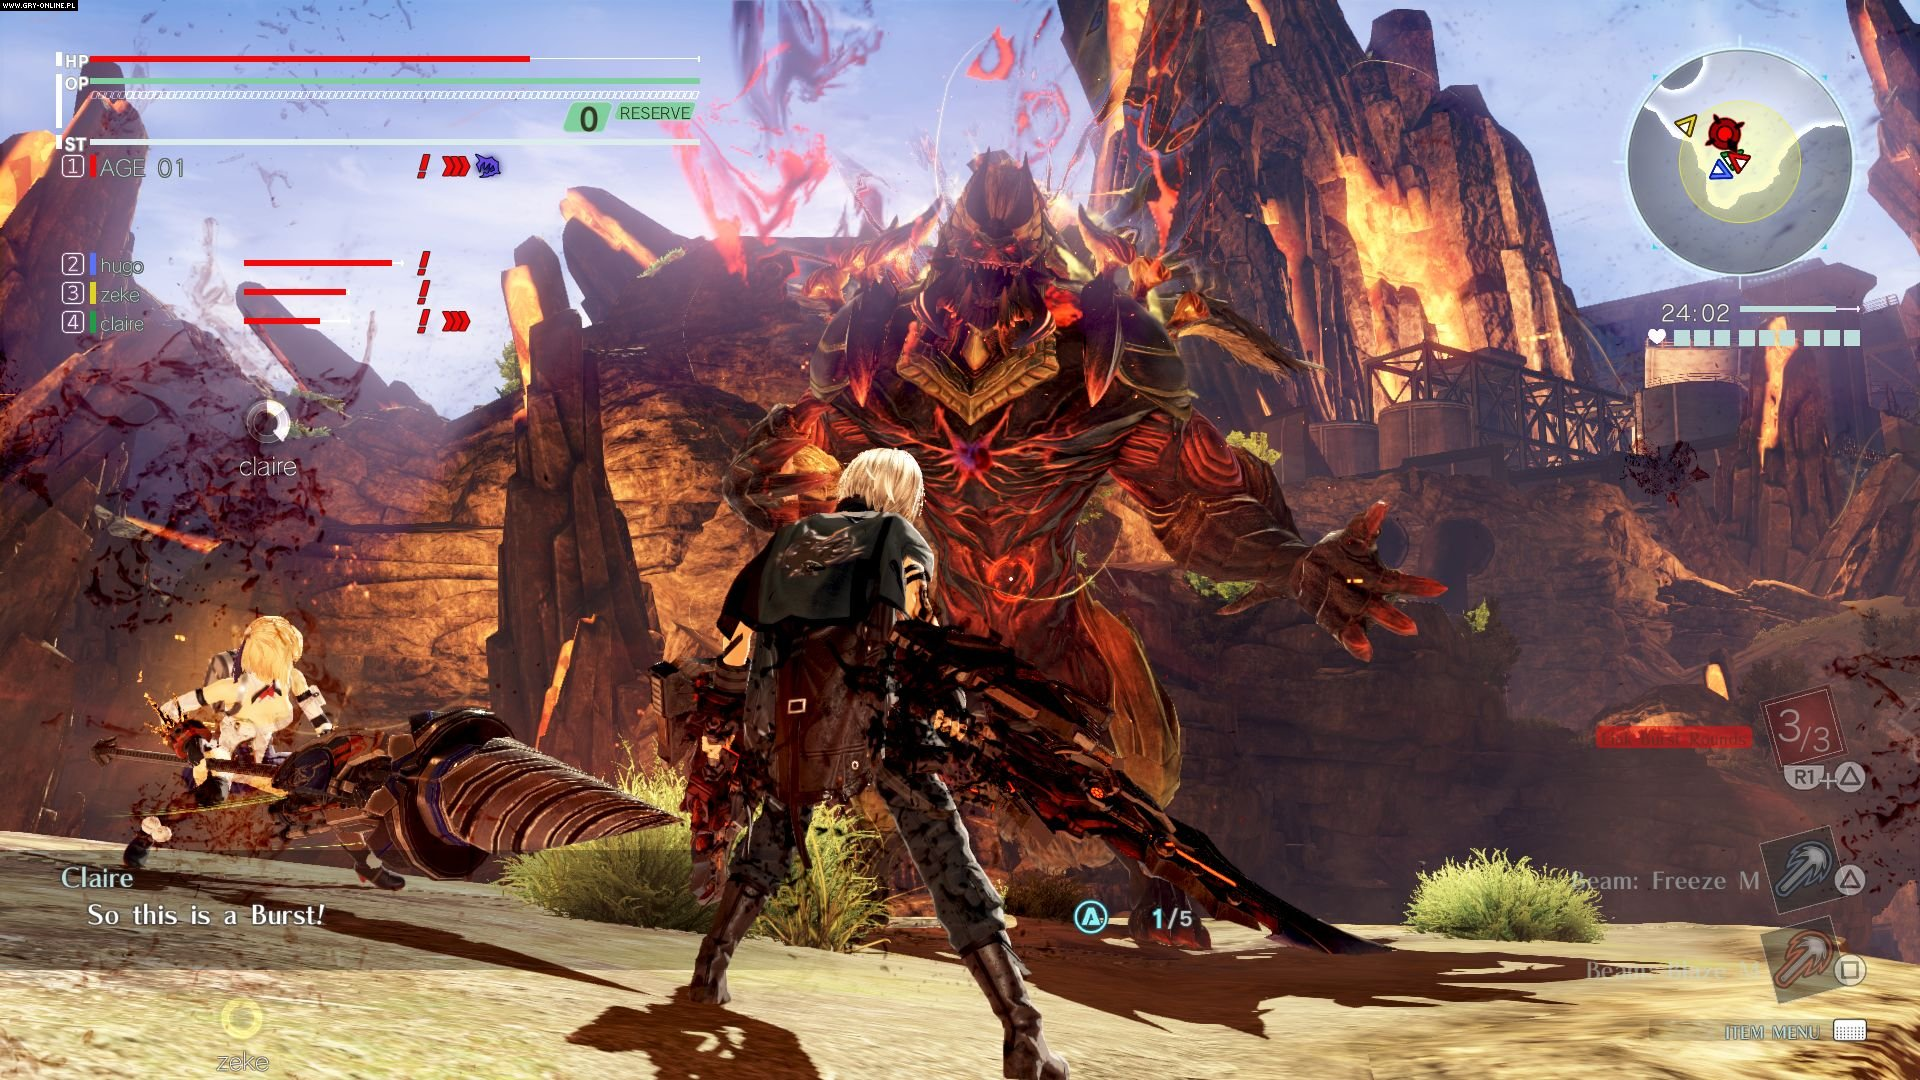 God Eater 3 PC, PS4 Games Image 102/232, Shift, Bandai Namco Entertainment